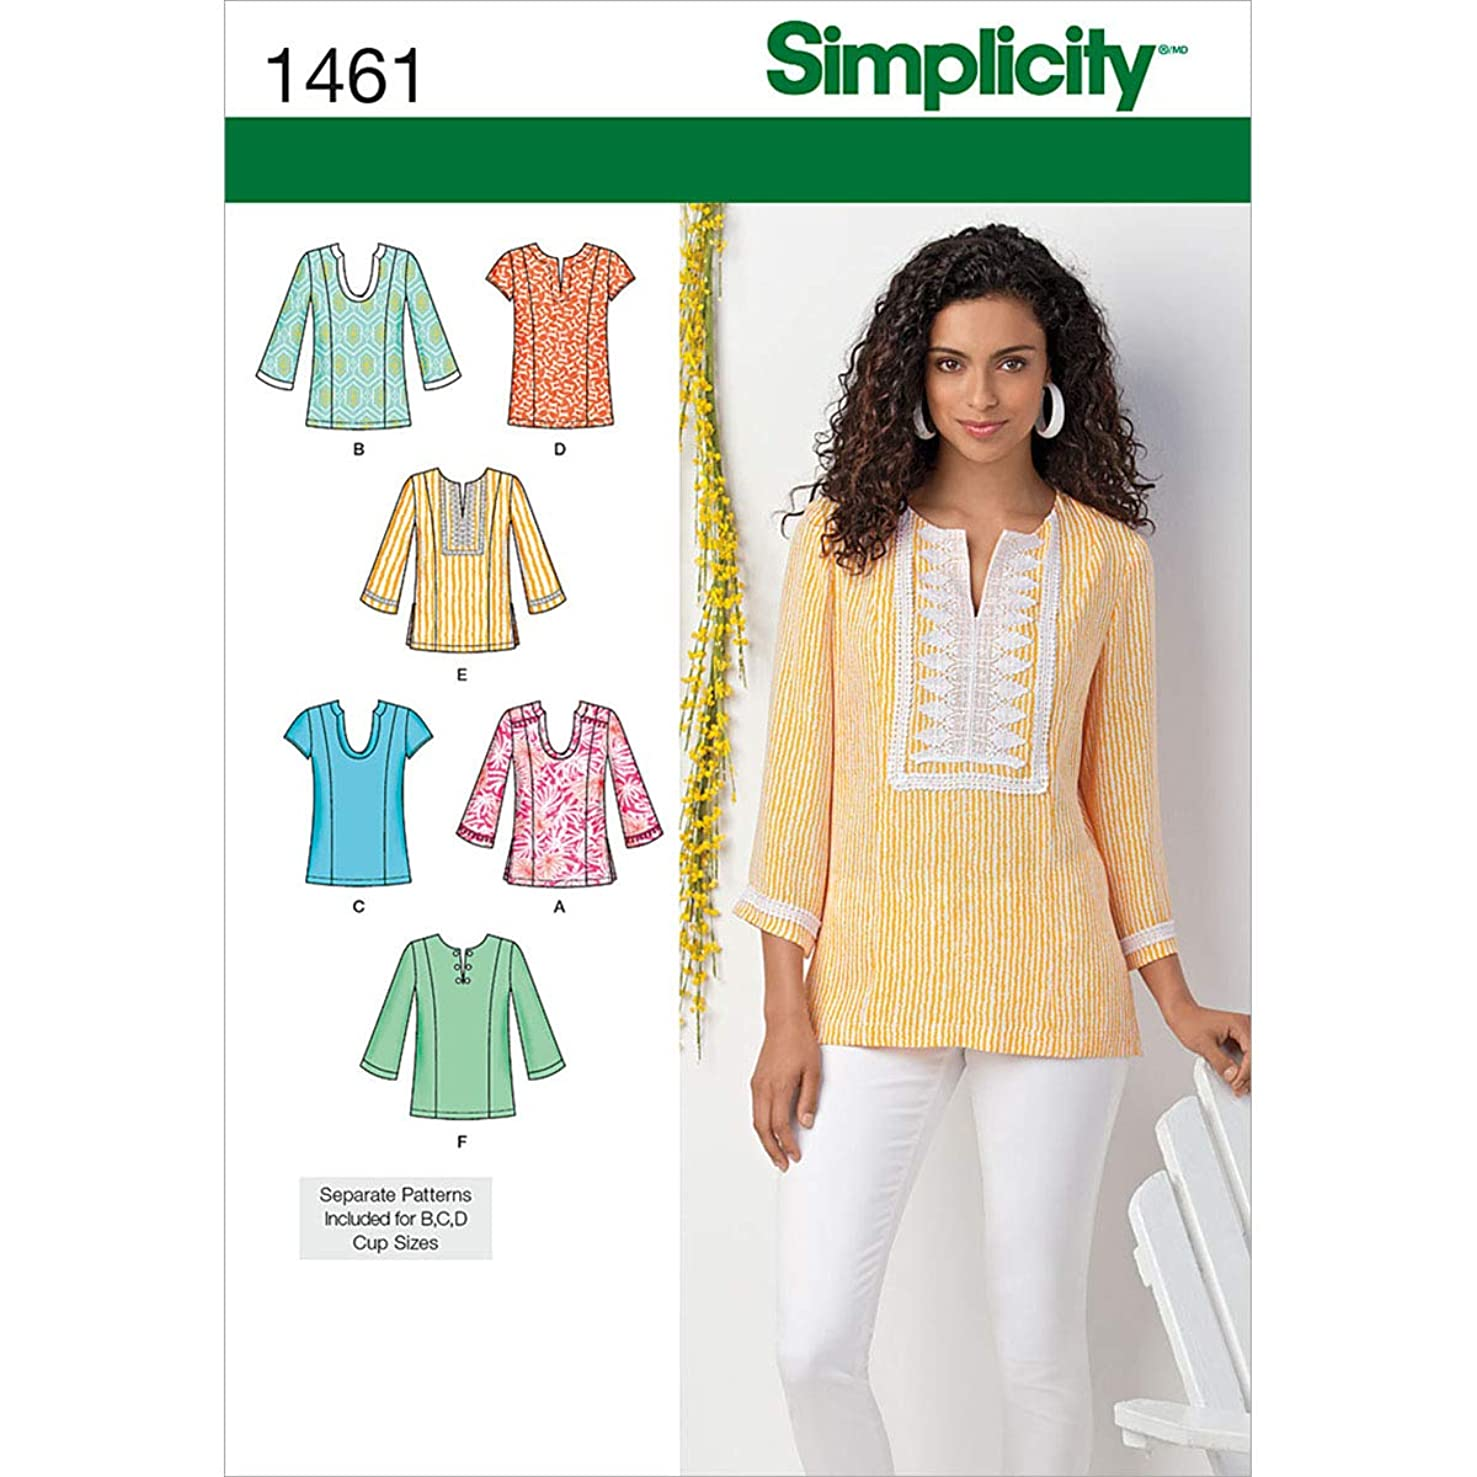 Simplicity 1461 Women's Top Collection Sewing Patterns, Sizes 20W-28W